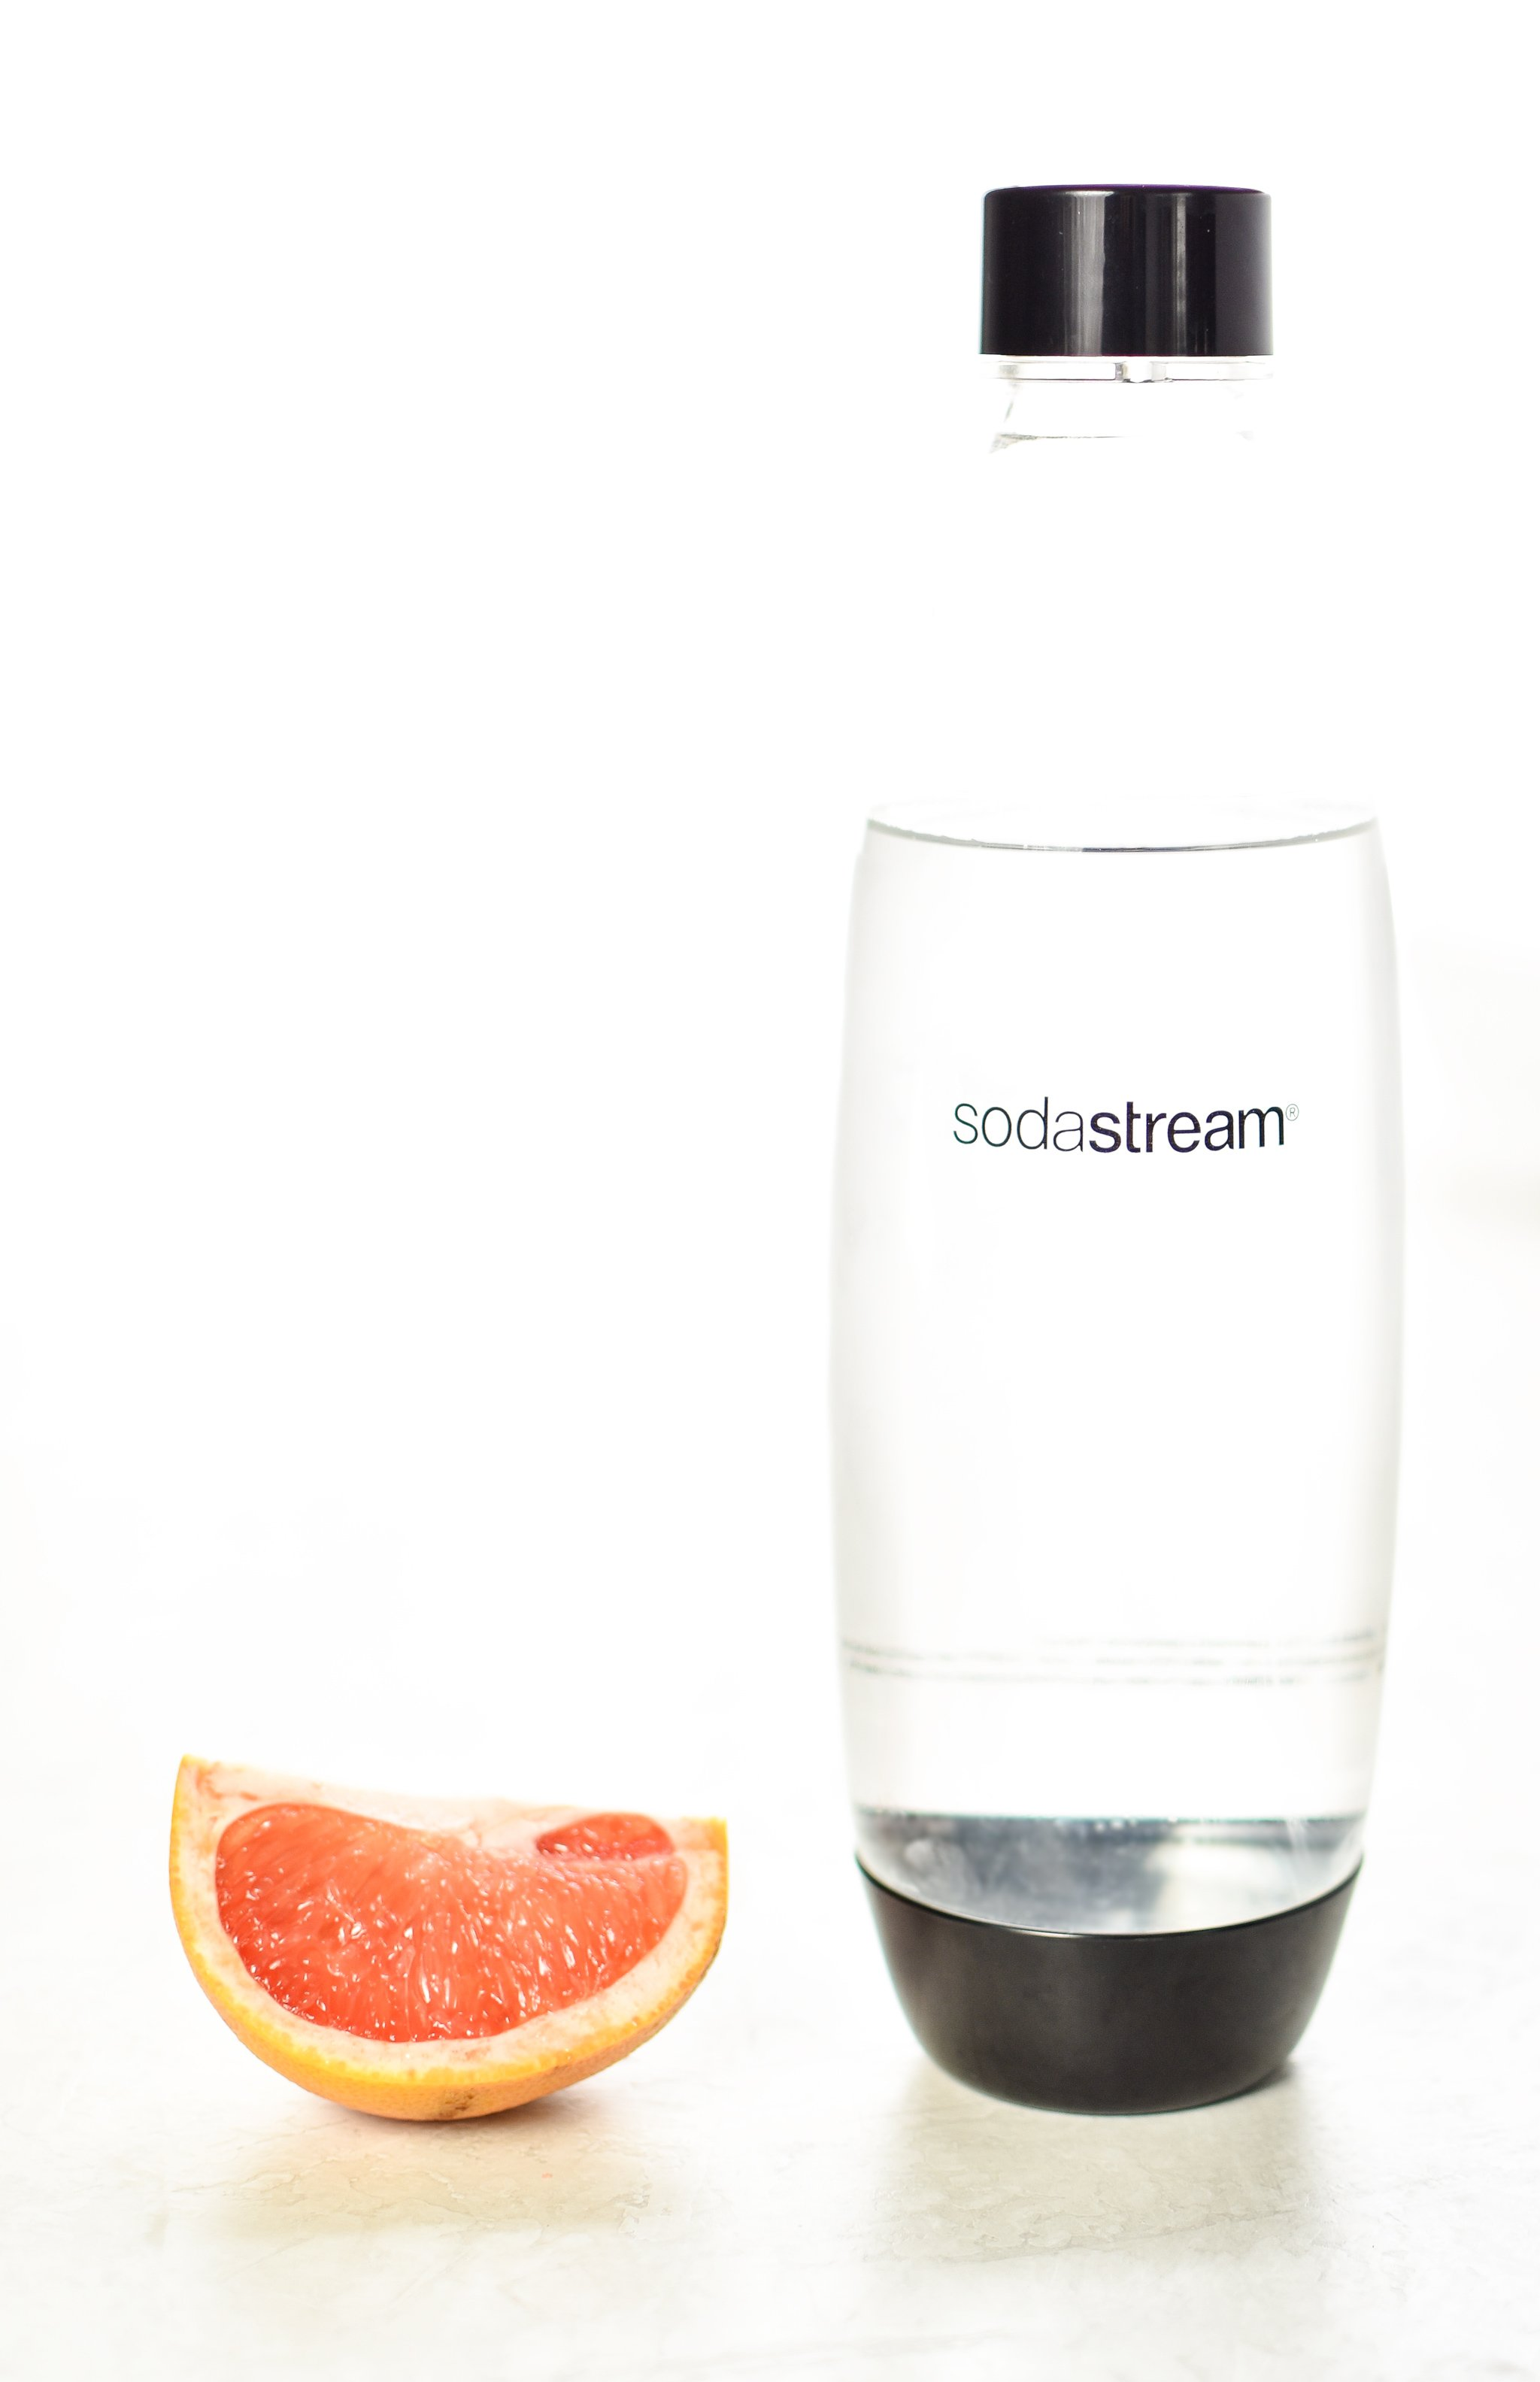 A slice of grapefruit sitting next to a SodaStream carbonating bottle filled with cold water in a bright room.